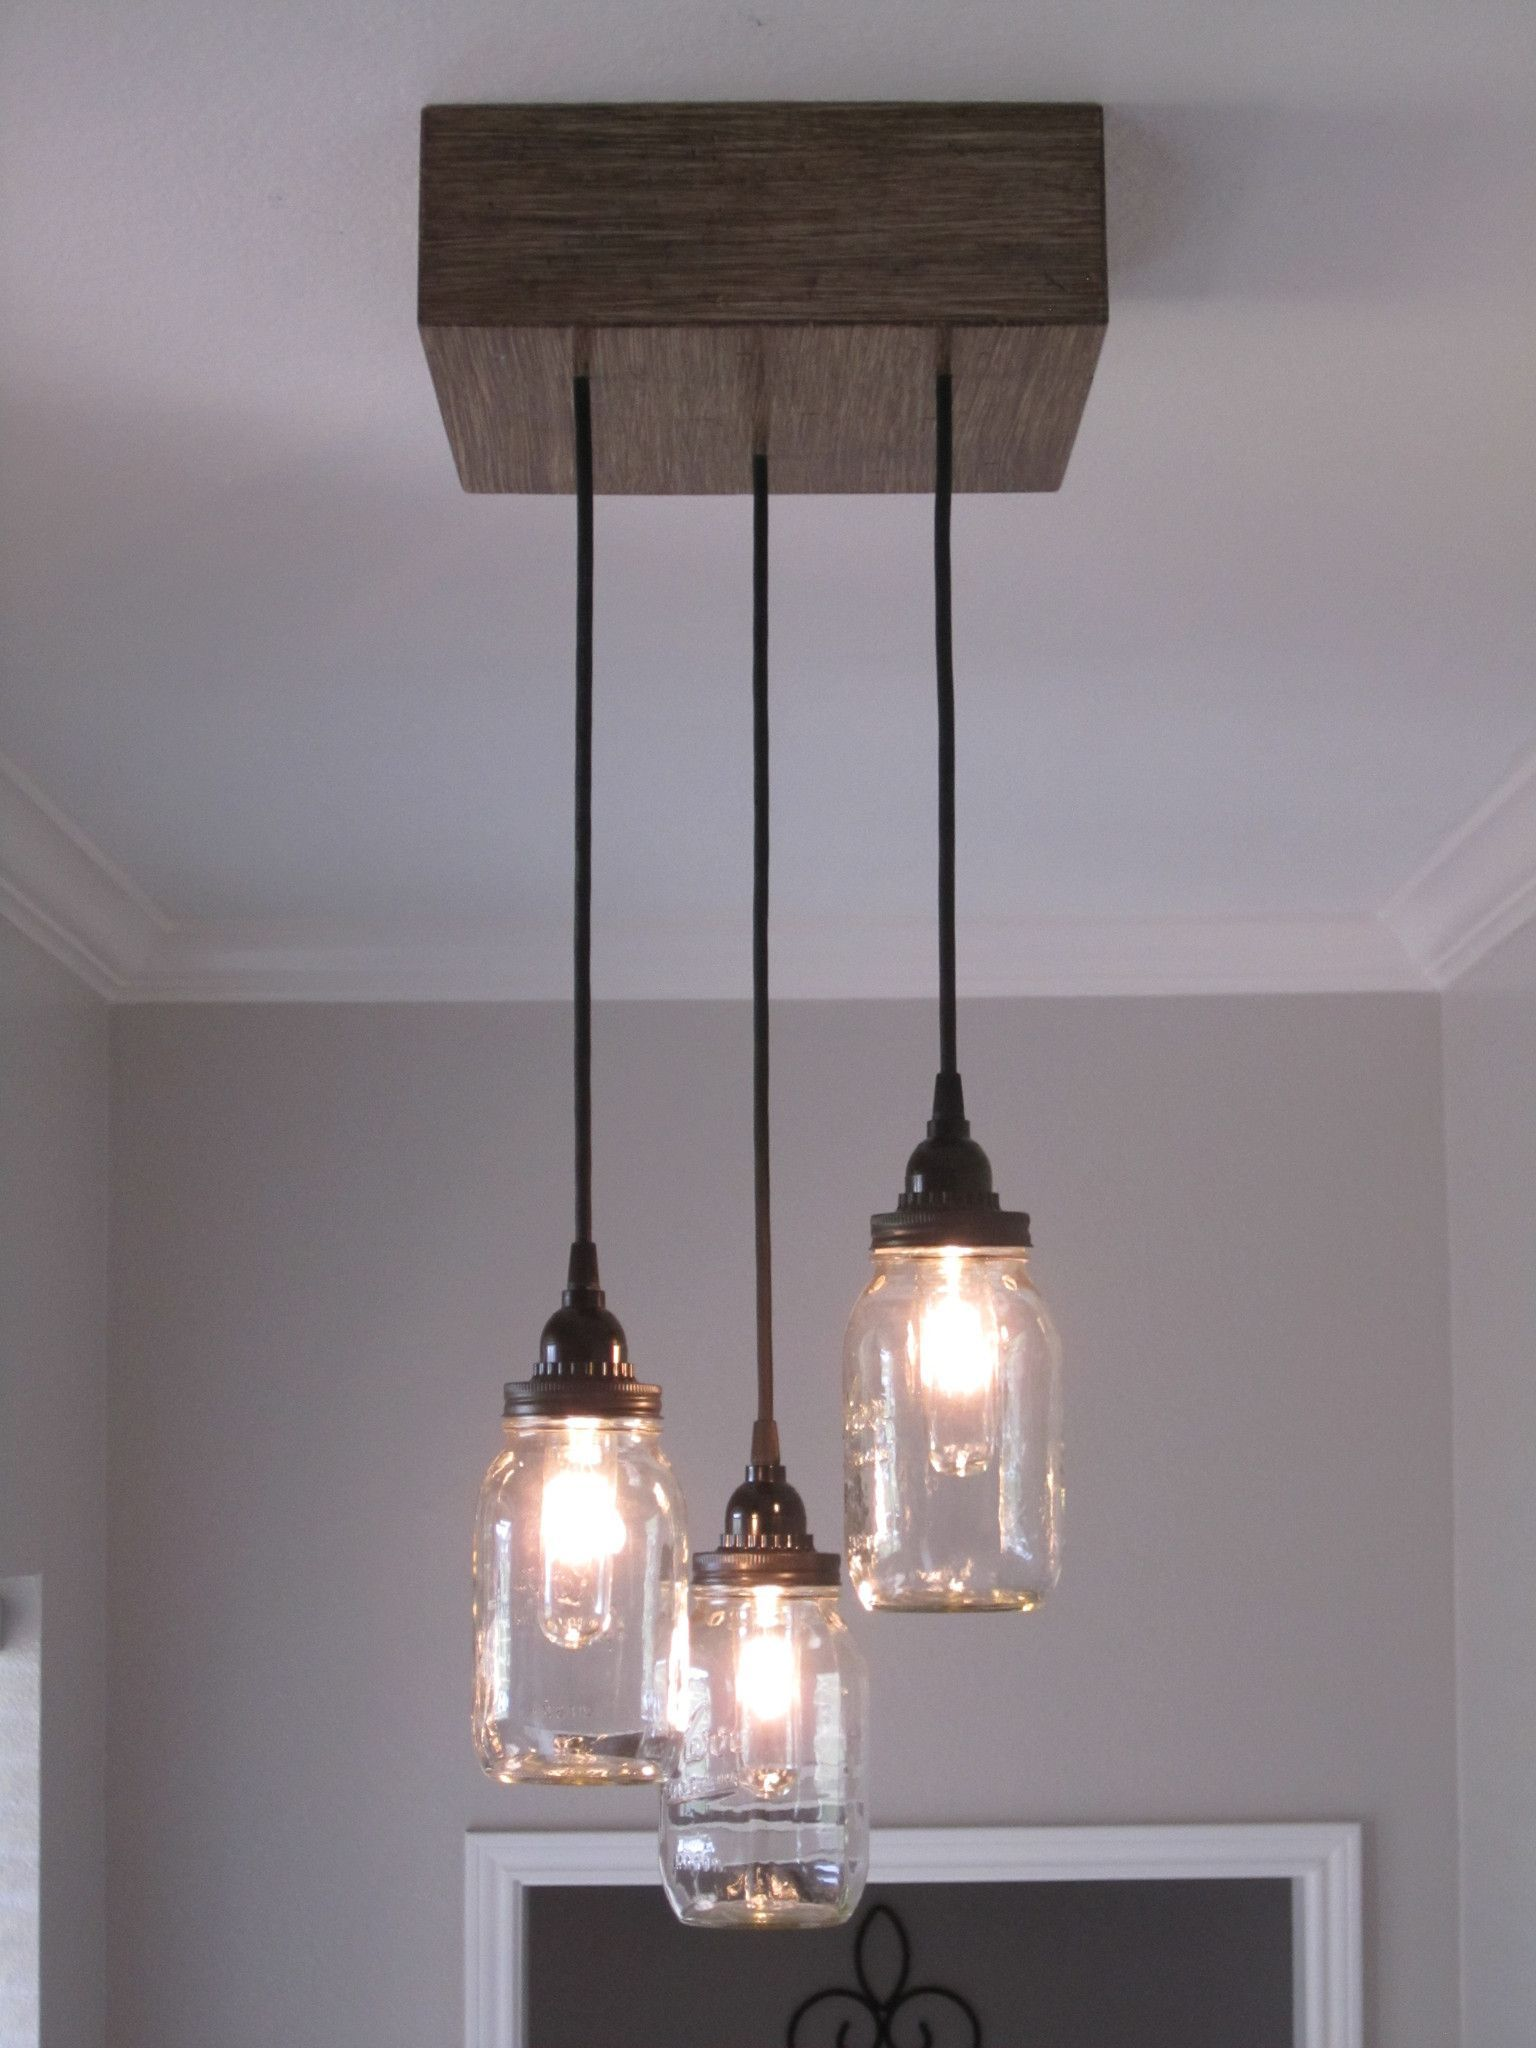 Square 3 mason jar ceiling light chandelier lights pinterest square 3 mason jar ceiling light chandelier arubaitofo Choice Image